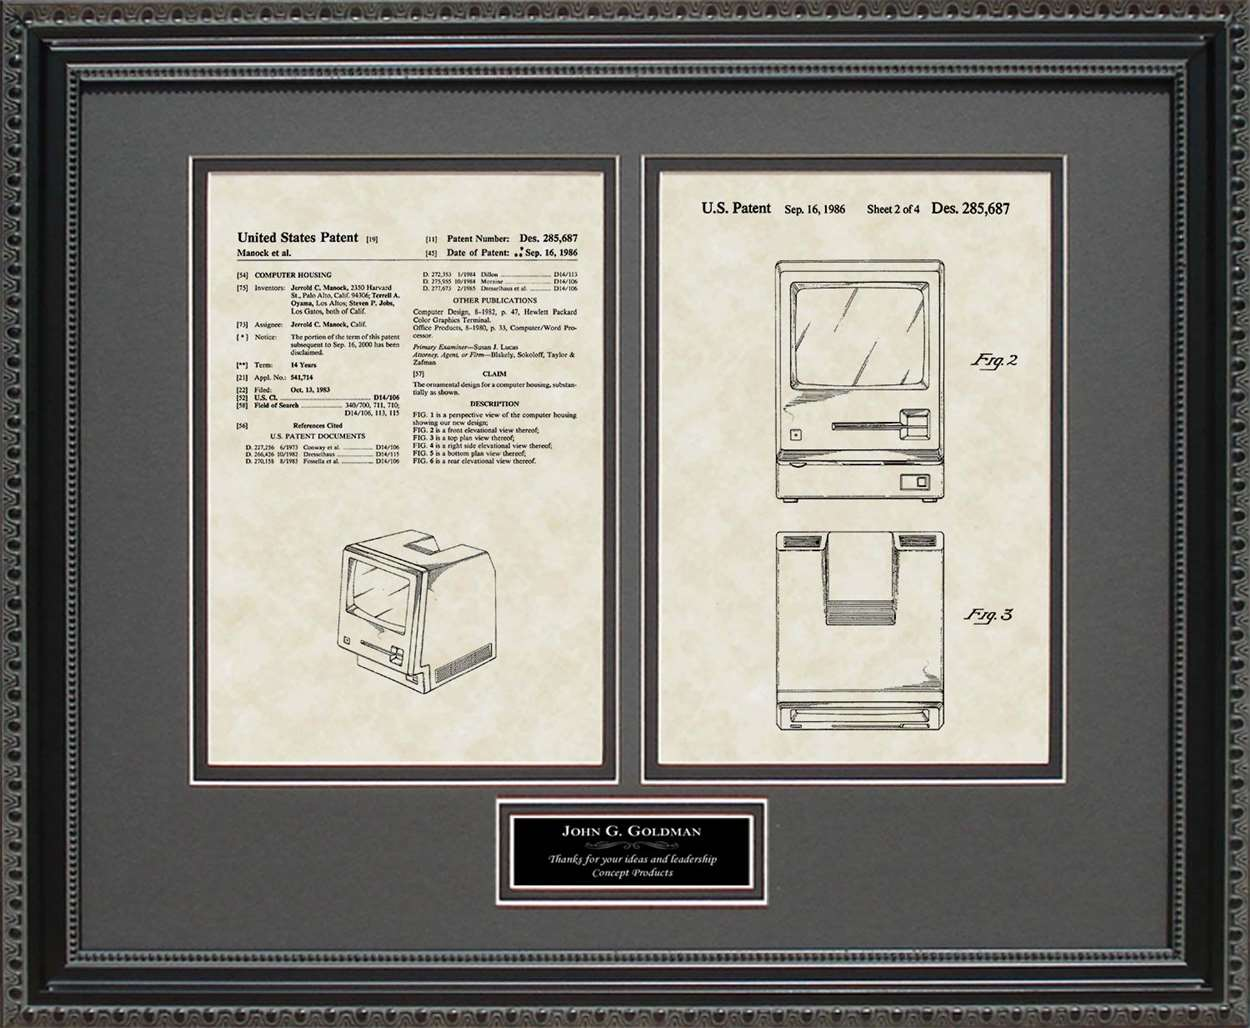 Personalized Macintosh Computer Patent, Art & Copy, Manock & Jobs, 1986